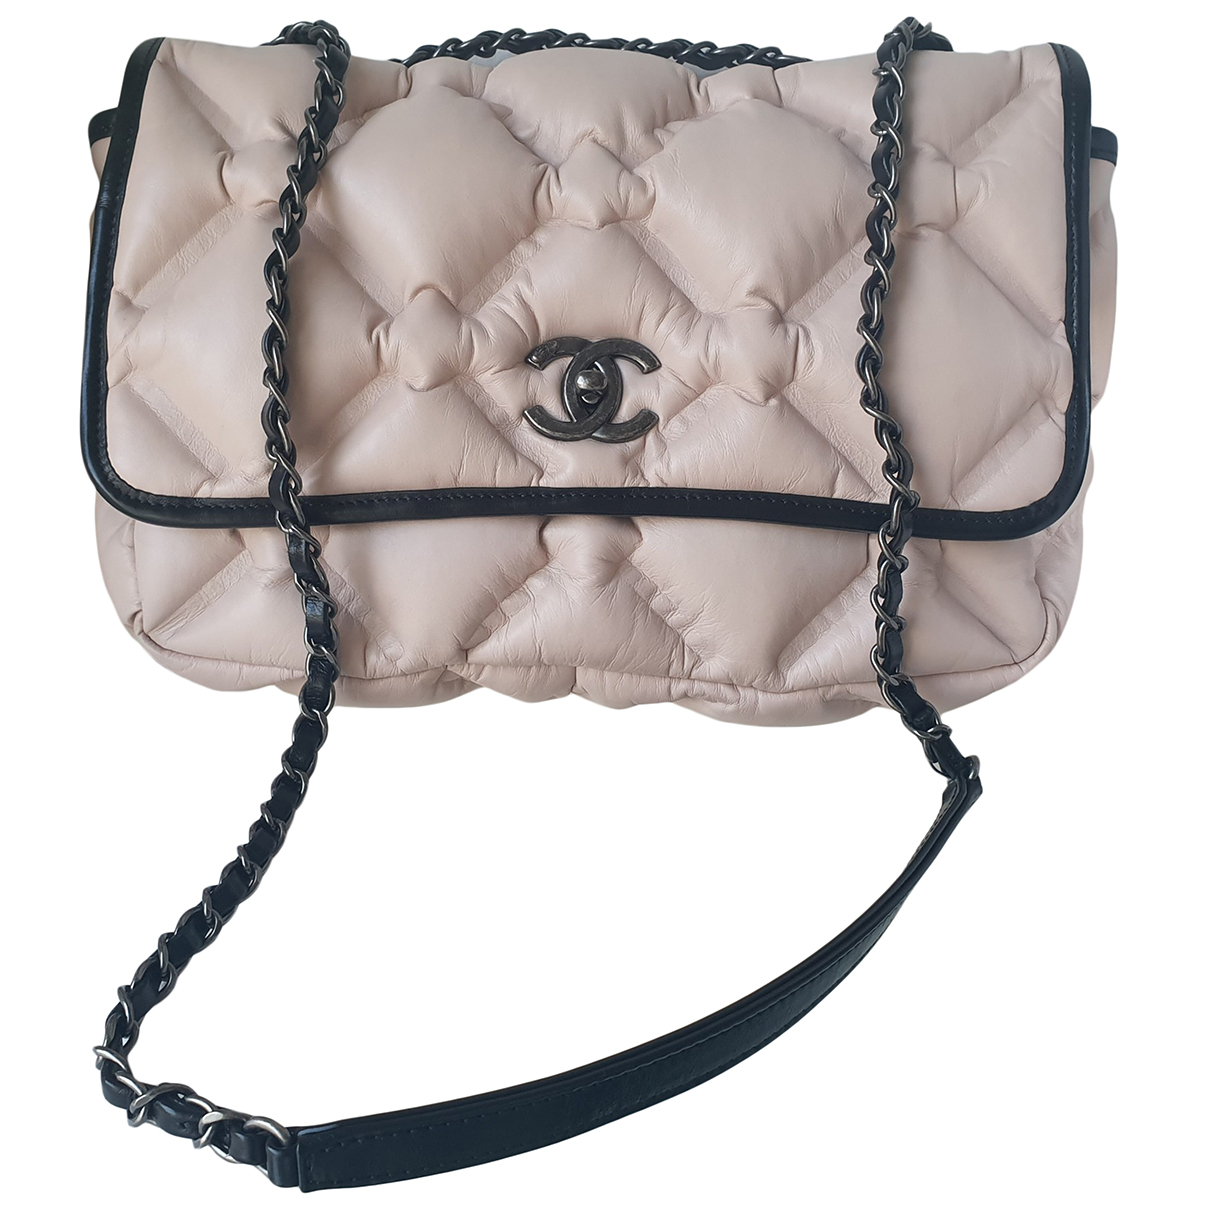 Chanel Timeless/Classique Pink Leather handbag for Women N